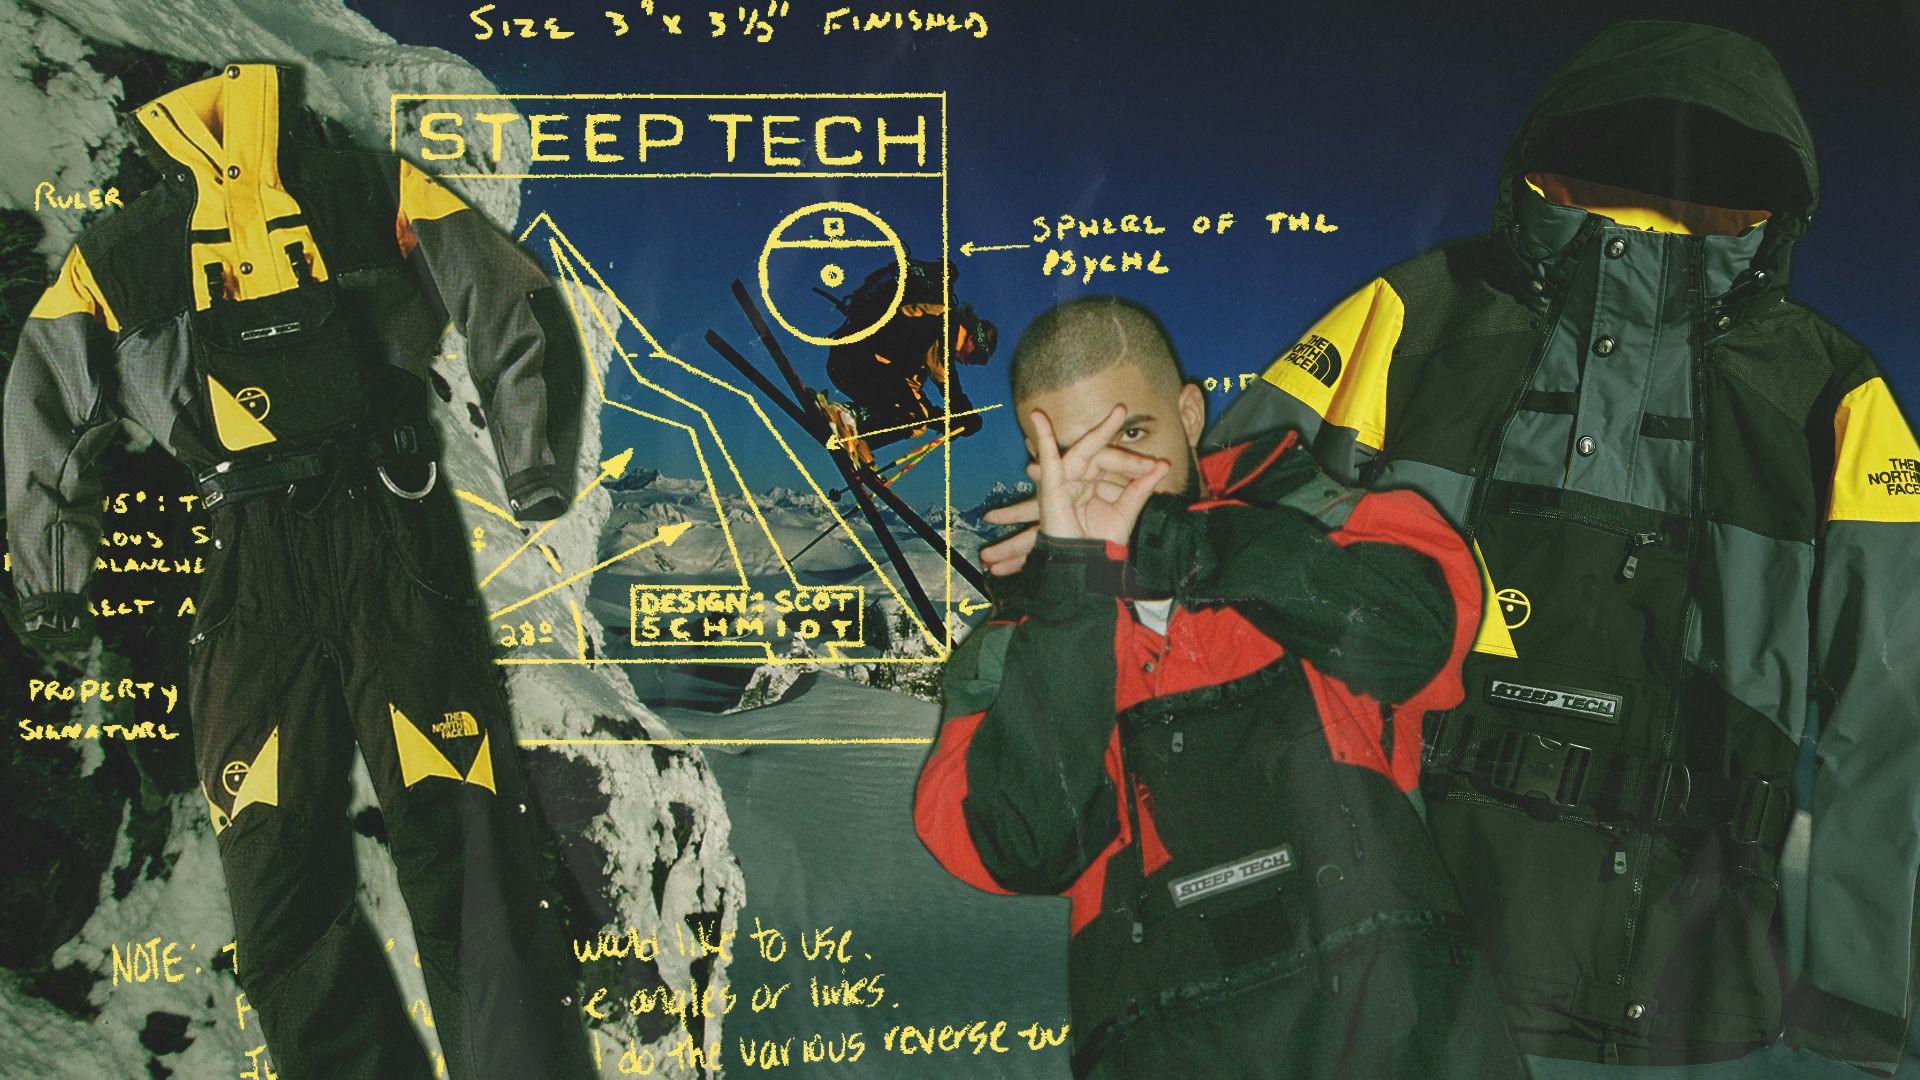 The North Face Steep Tech Collage